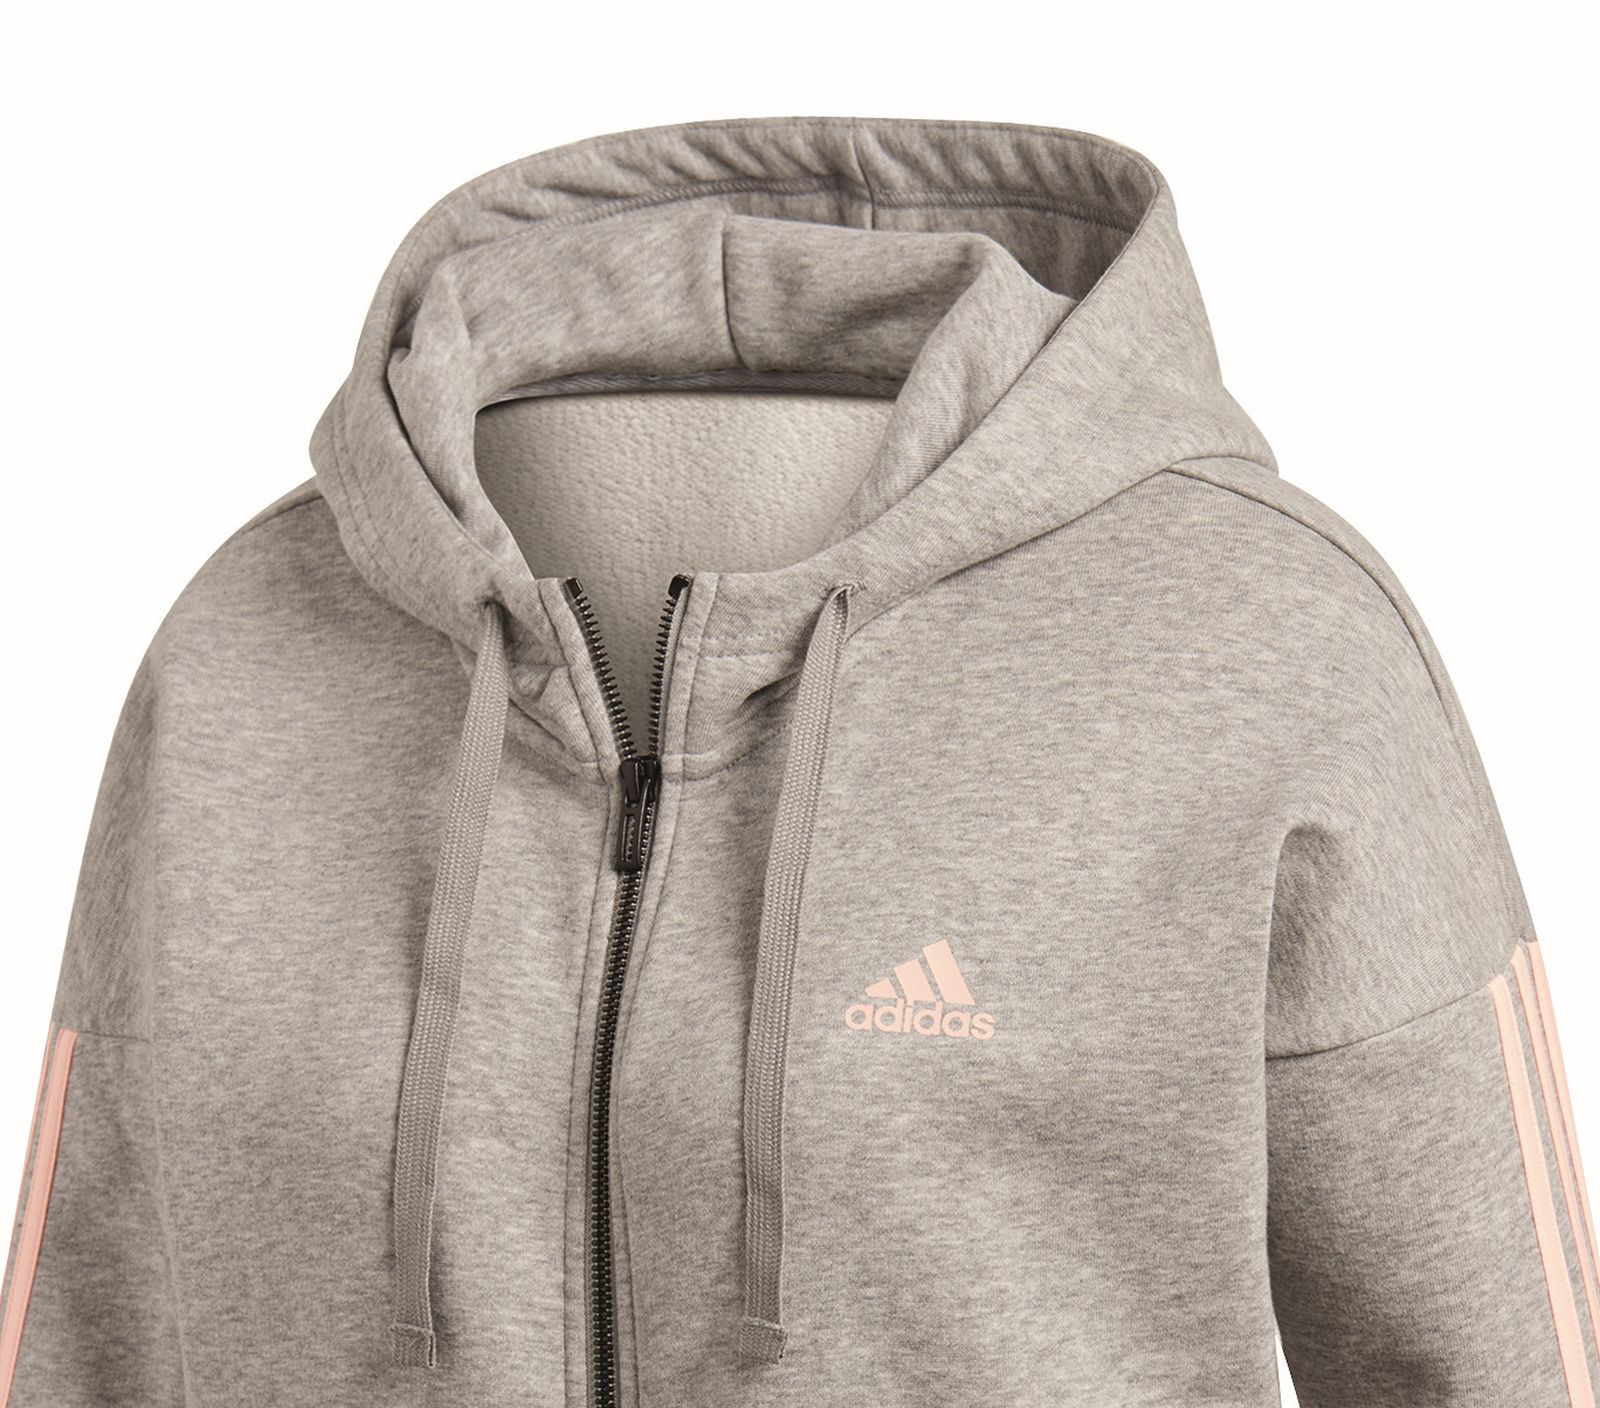 Details about Adidas Performance Women's Sports Hoody 3 Stripes Fullzip  Hoodie Grey